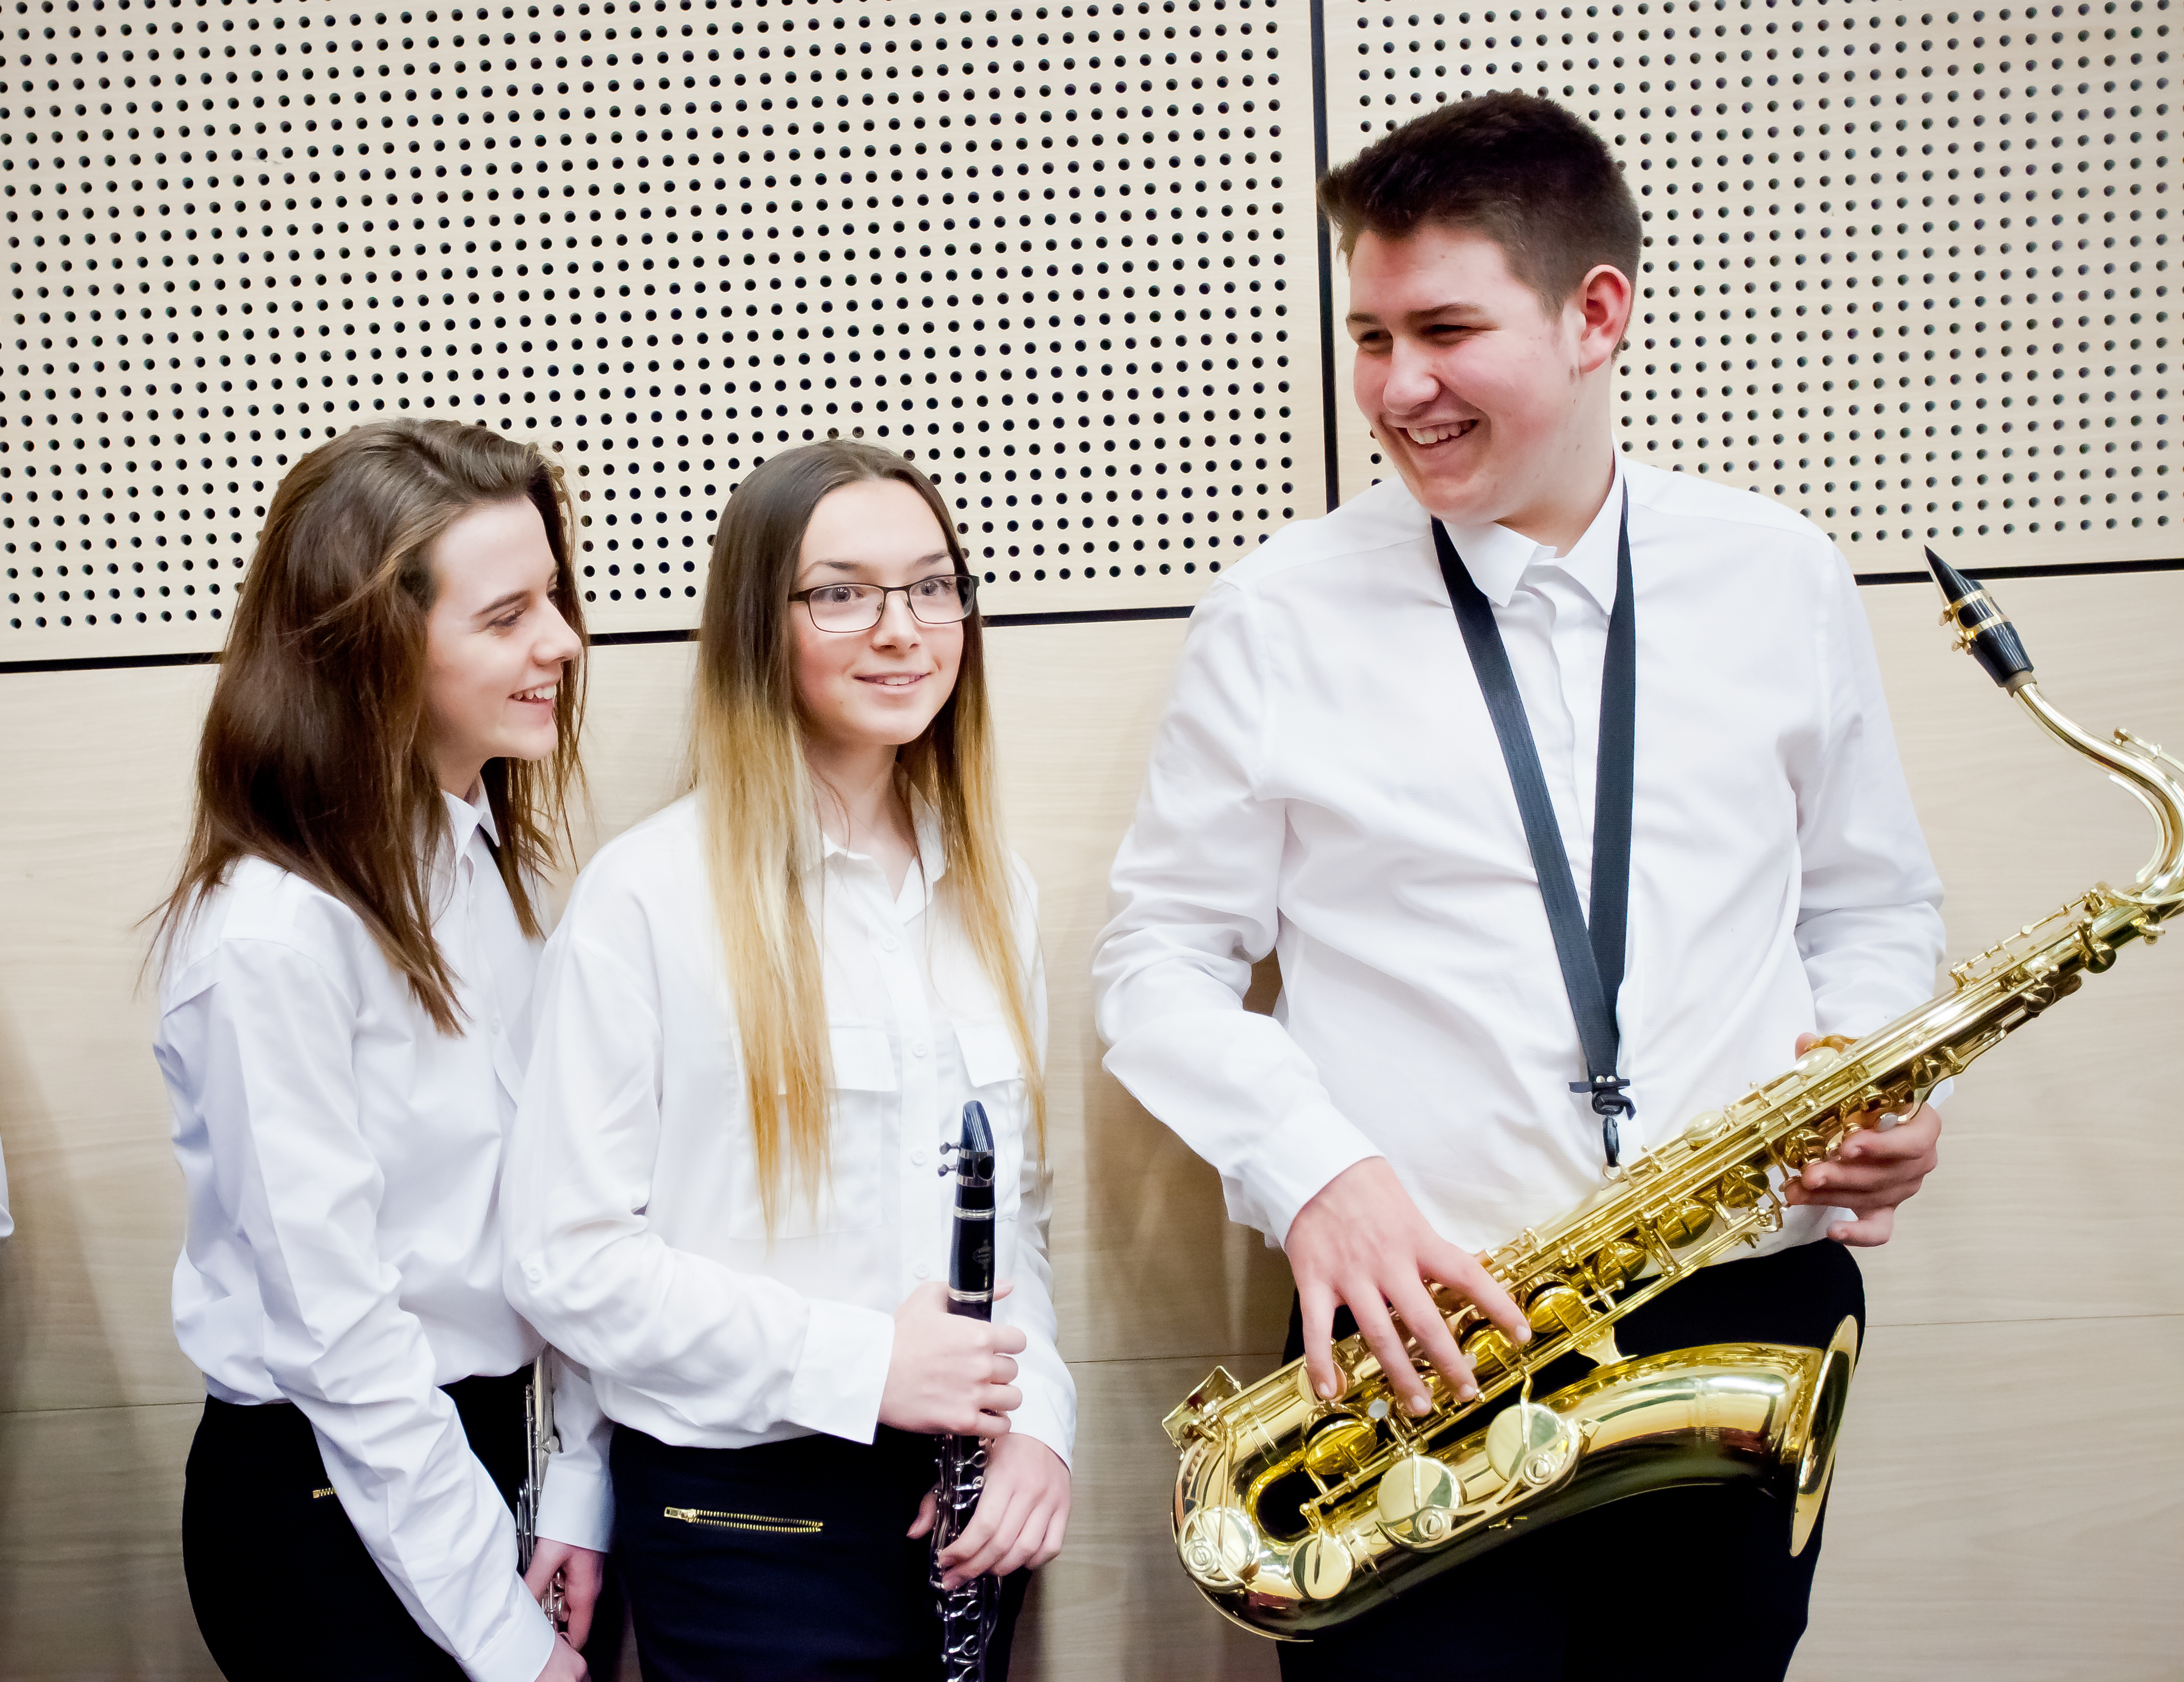 CoSYJO – City of Sunderland Youth Jazz Orchestra